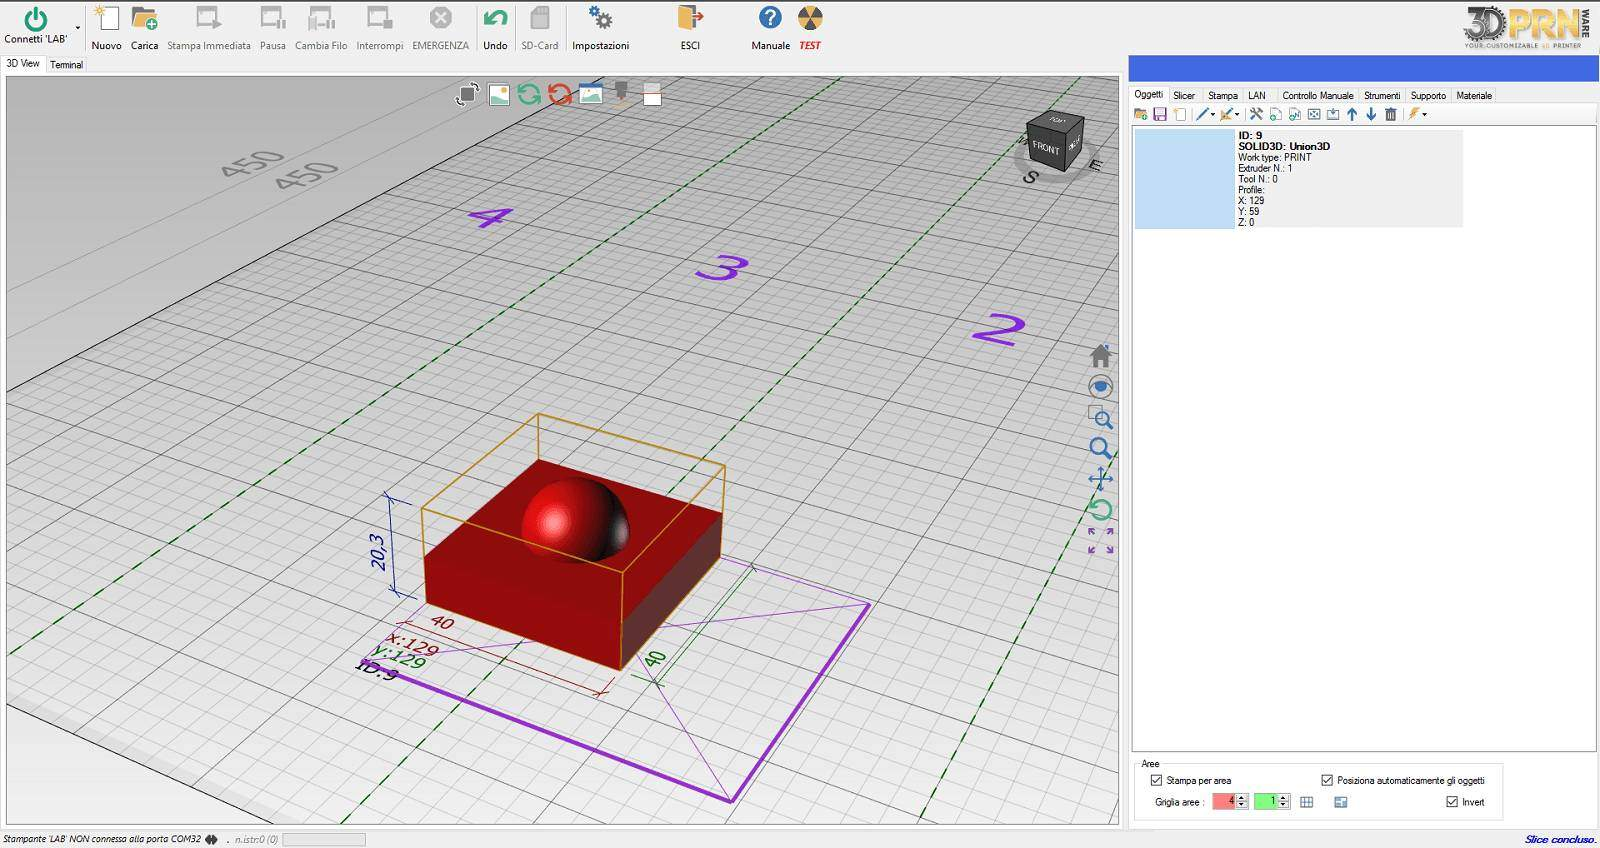 Software owner of 3DPRN for 3D printing